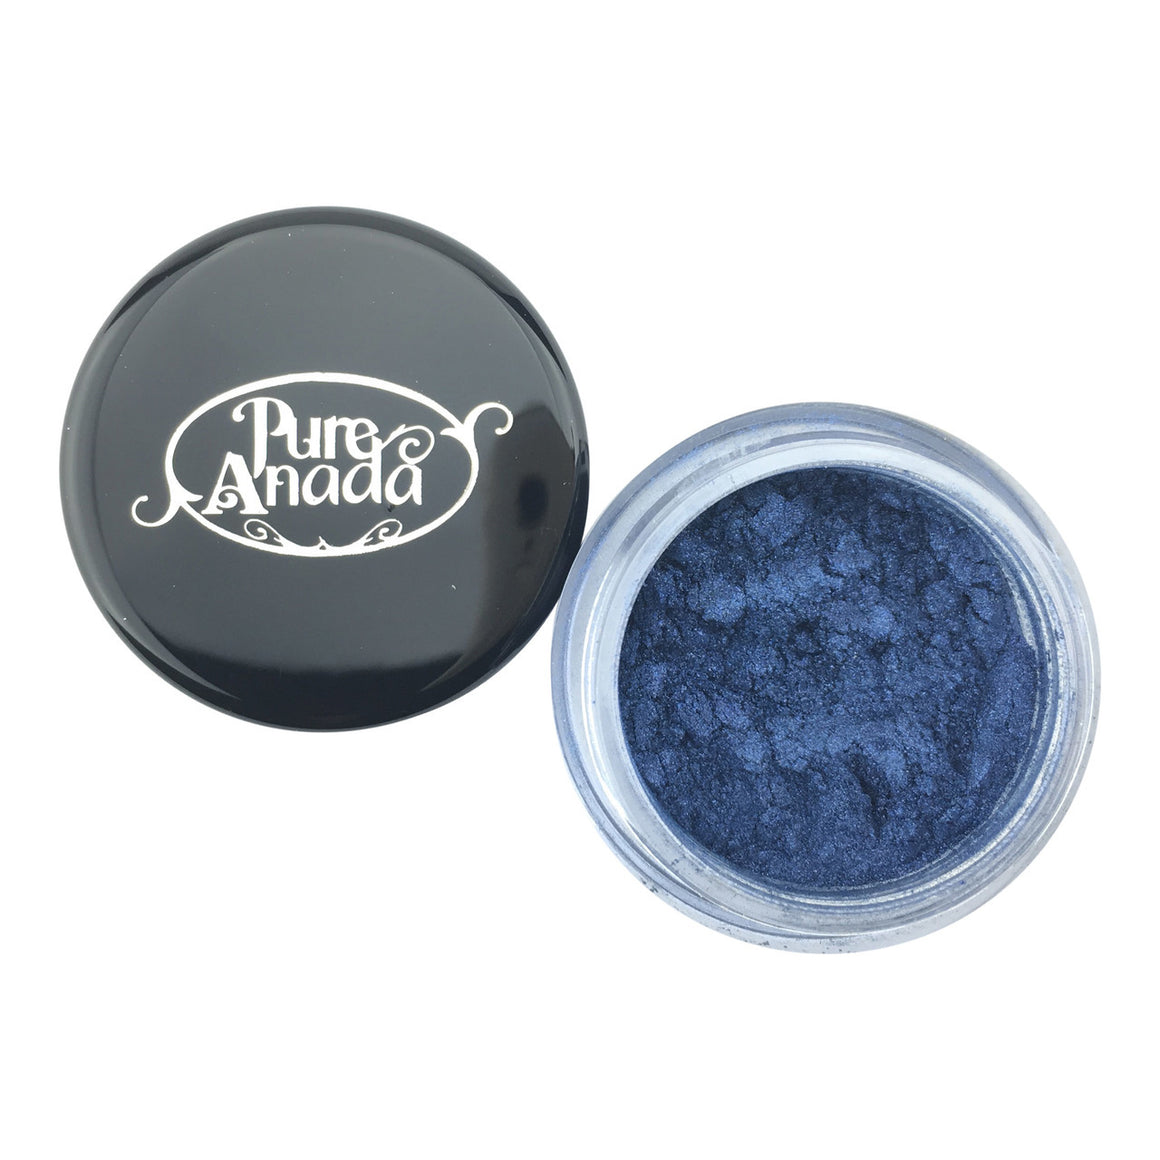 Nautical - Luminous Eye Loose Shadow 1g-PureAnada-Live in the Light